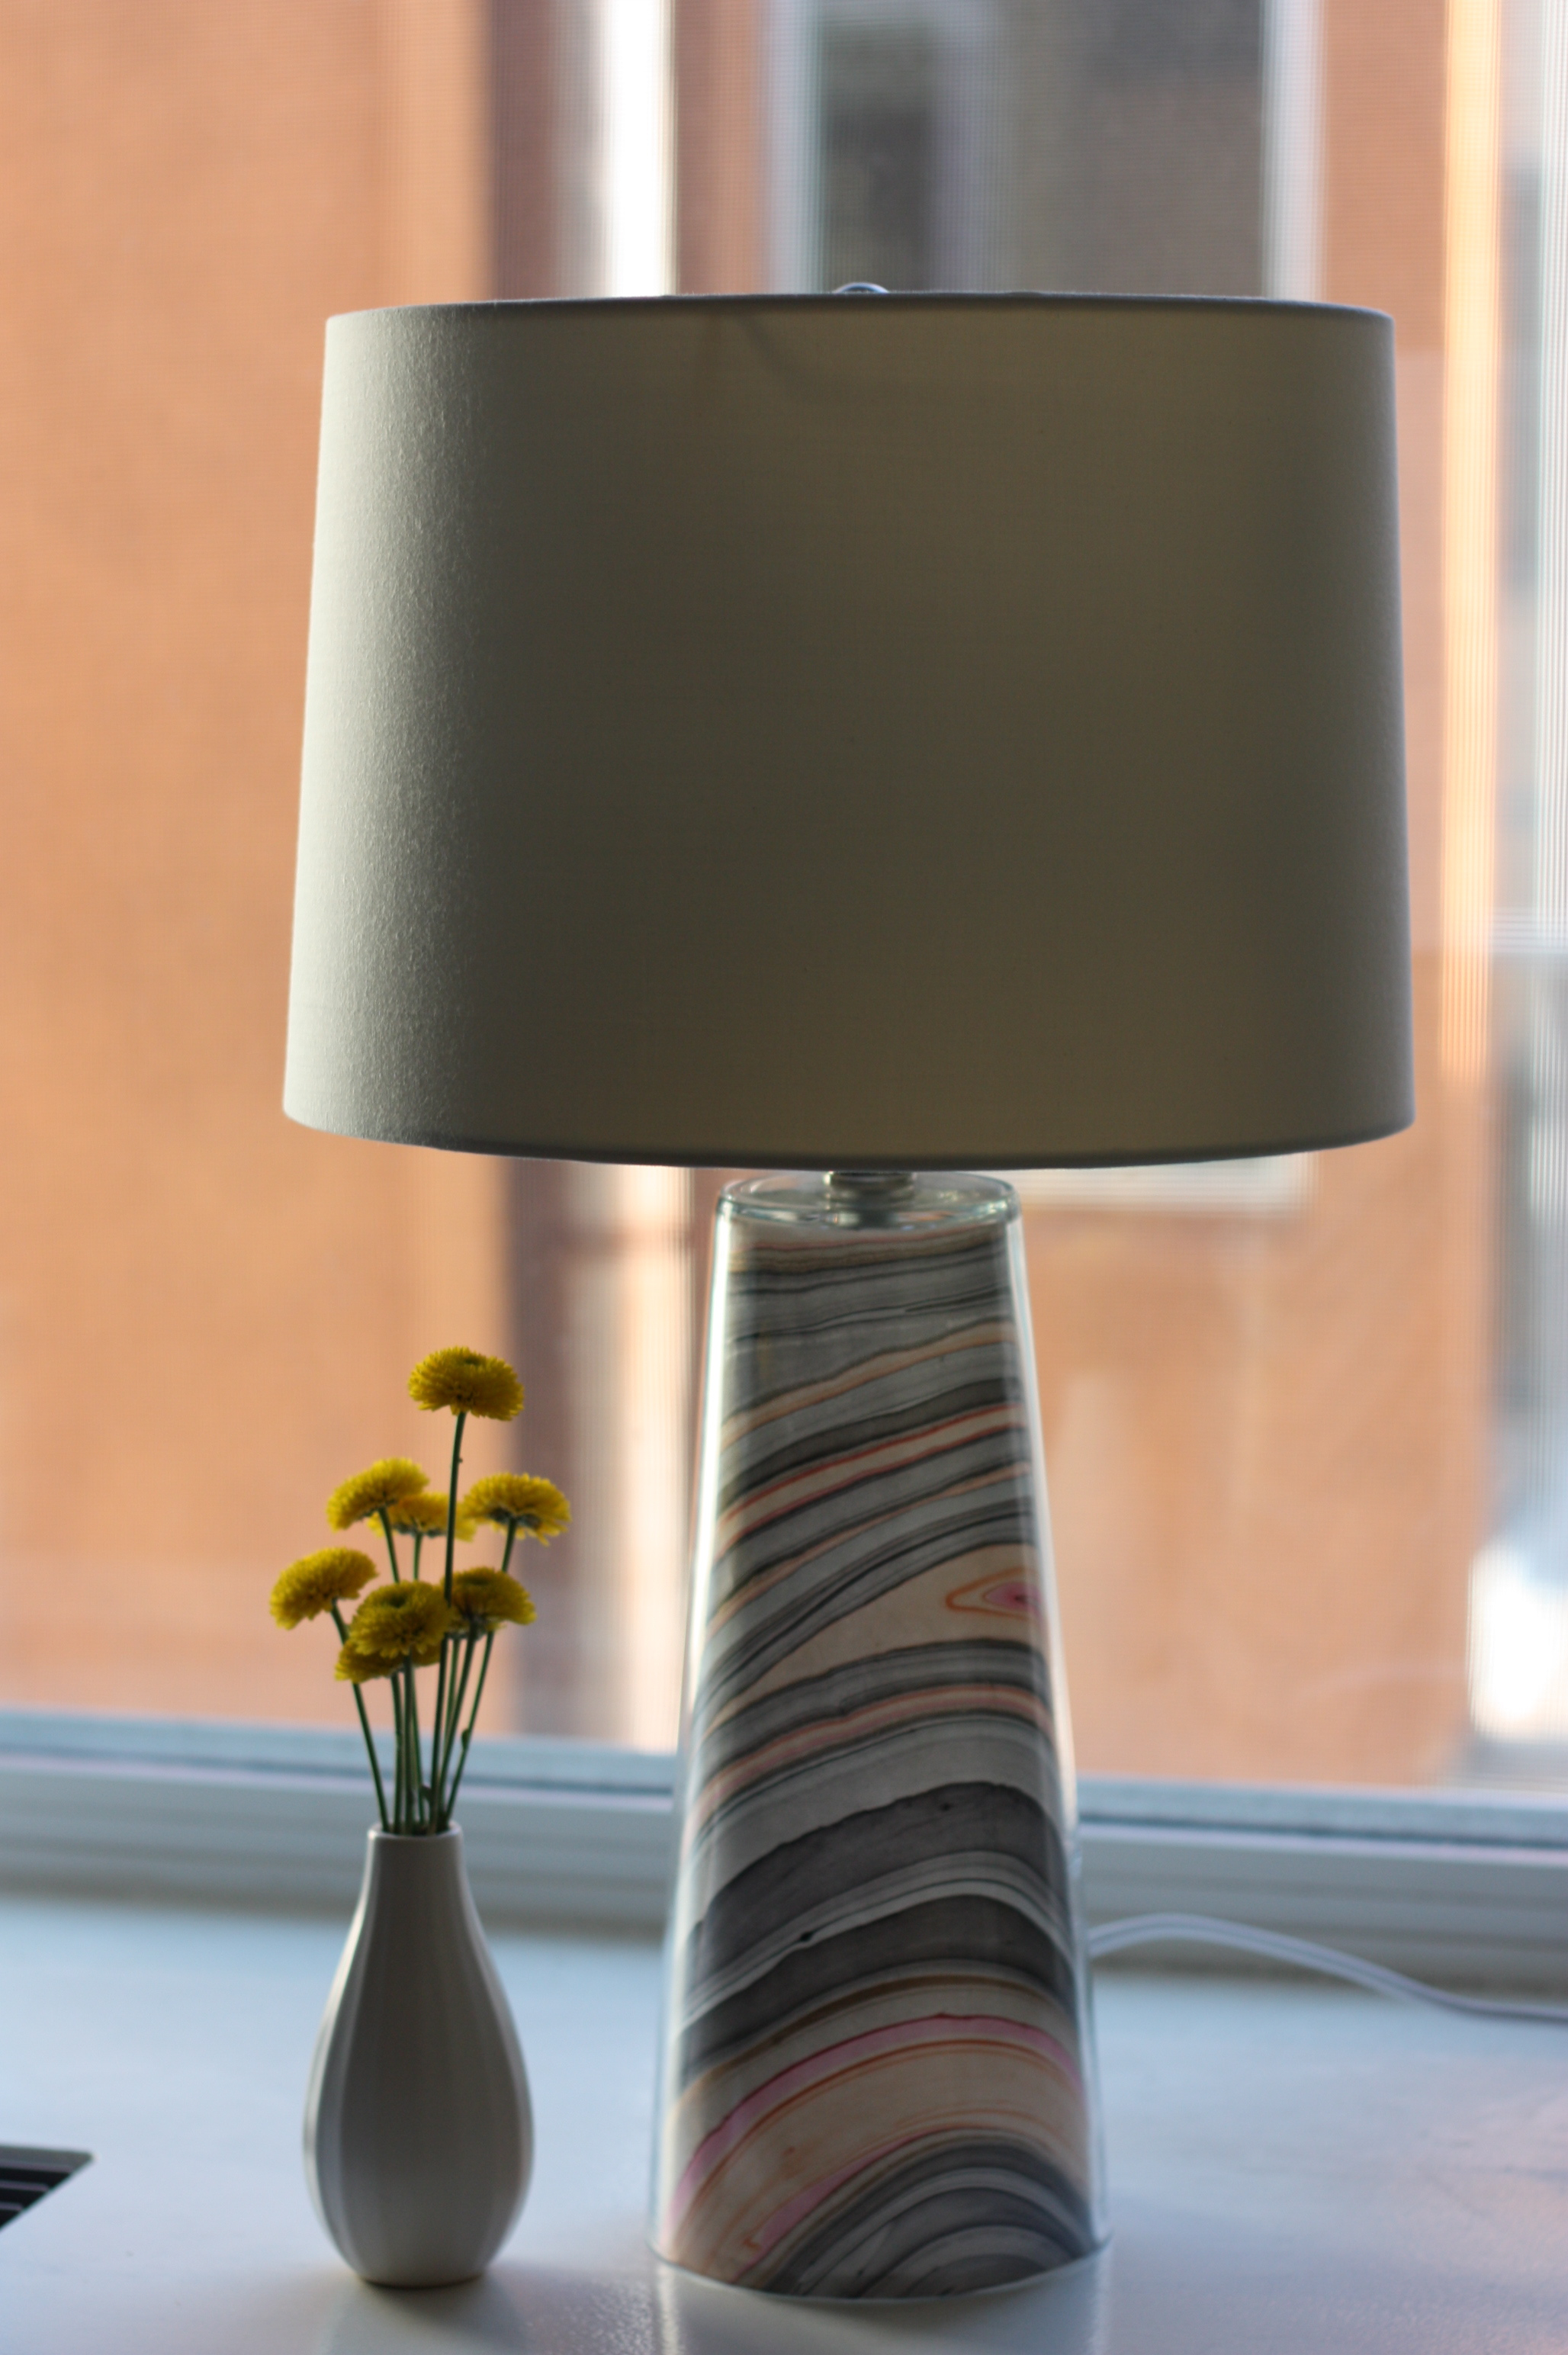 EnJOY It By Elise Blaha Cripe Project 1 A Table Lamp